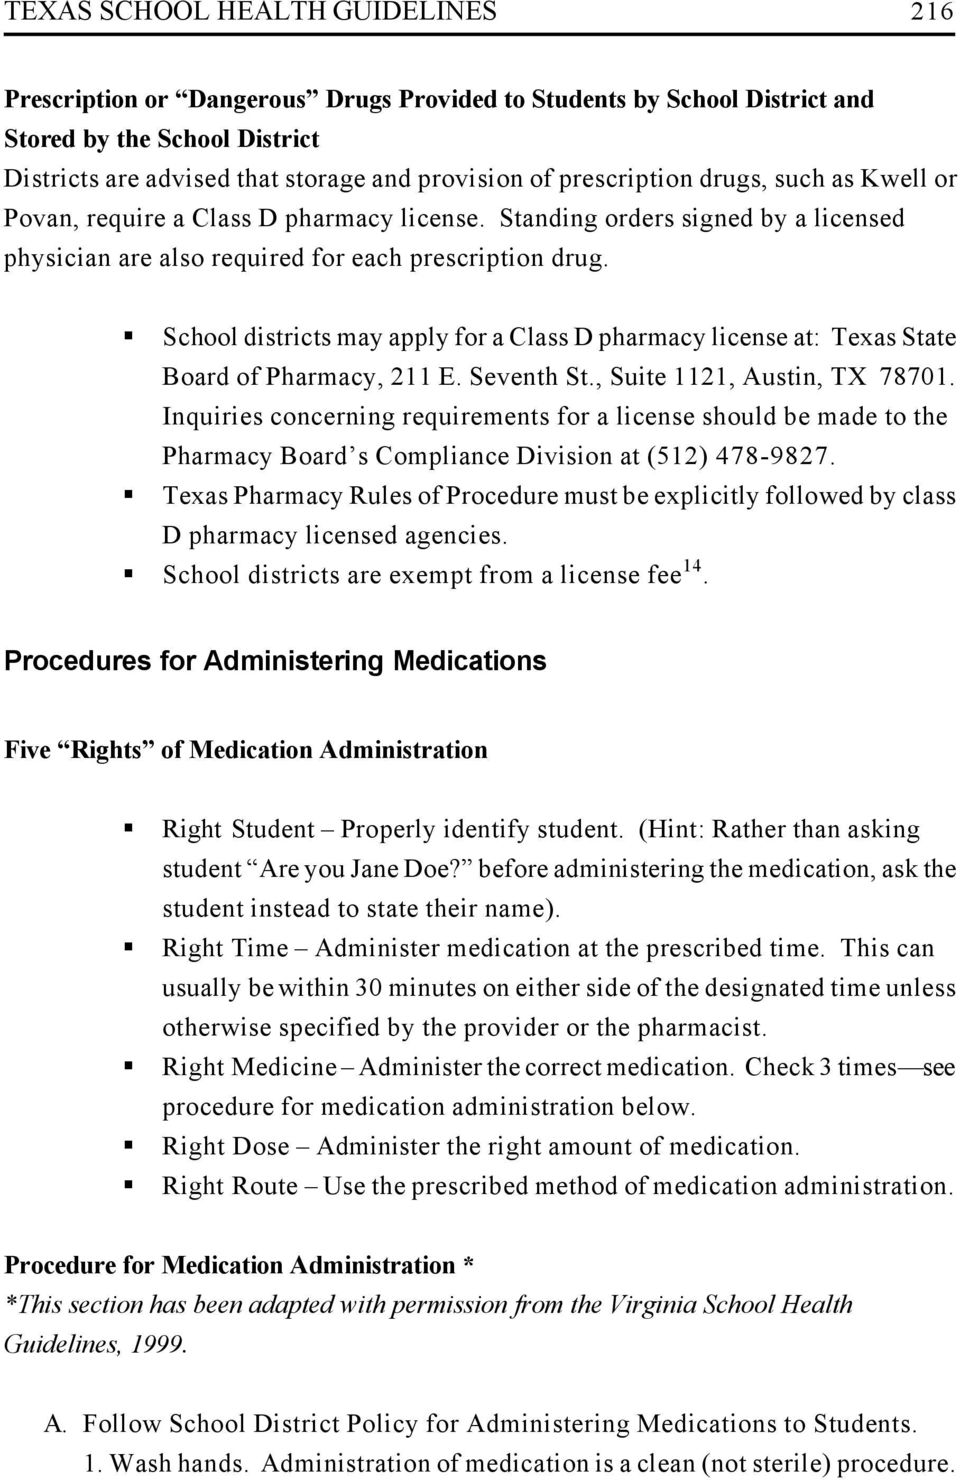 School districts may apply for a Class D pharmacy license at: Texas State Board of Pharmacy, 211 E. Seventh St., Suite 1121, Austin, TX 78701.